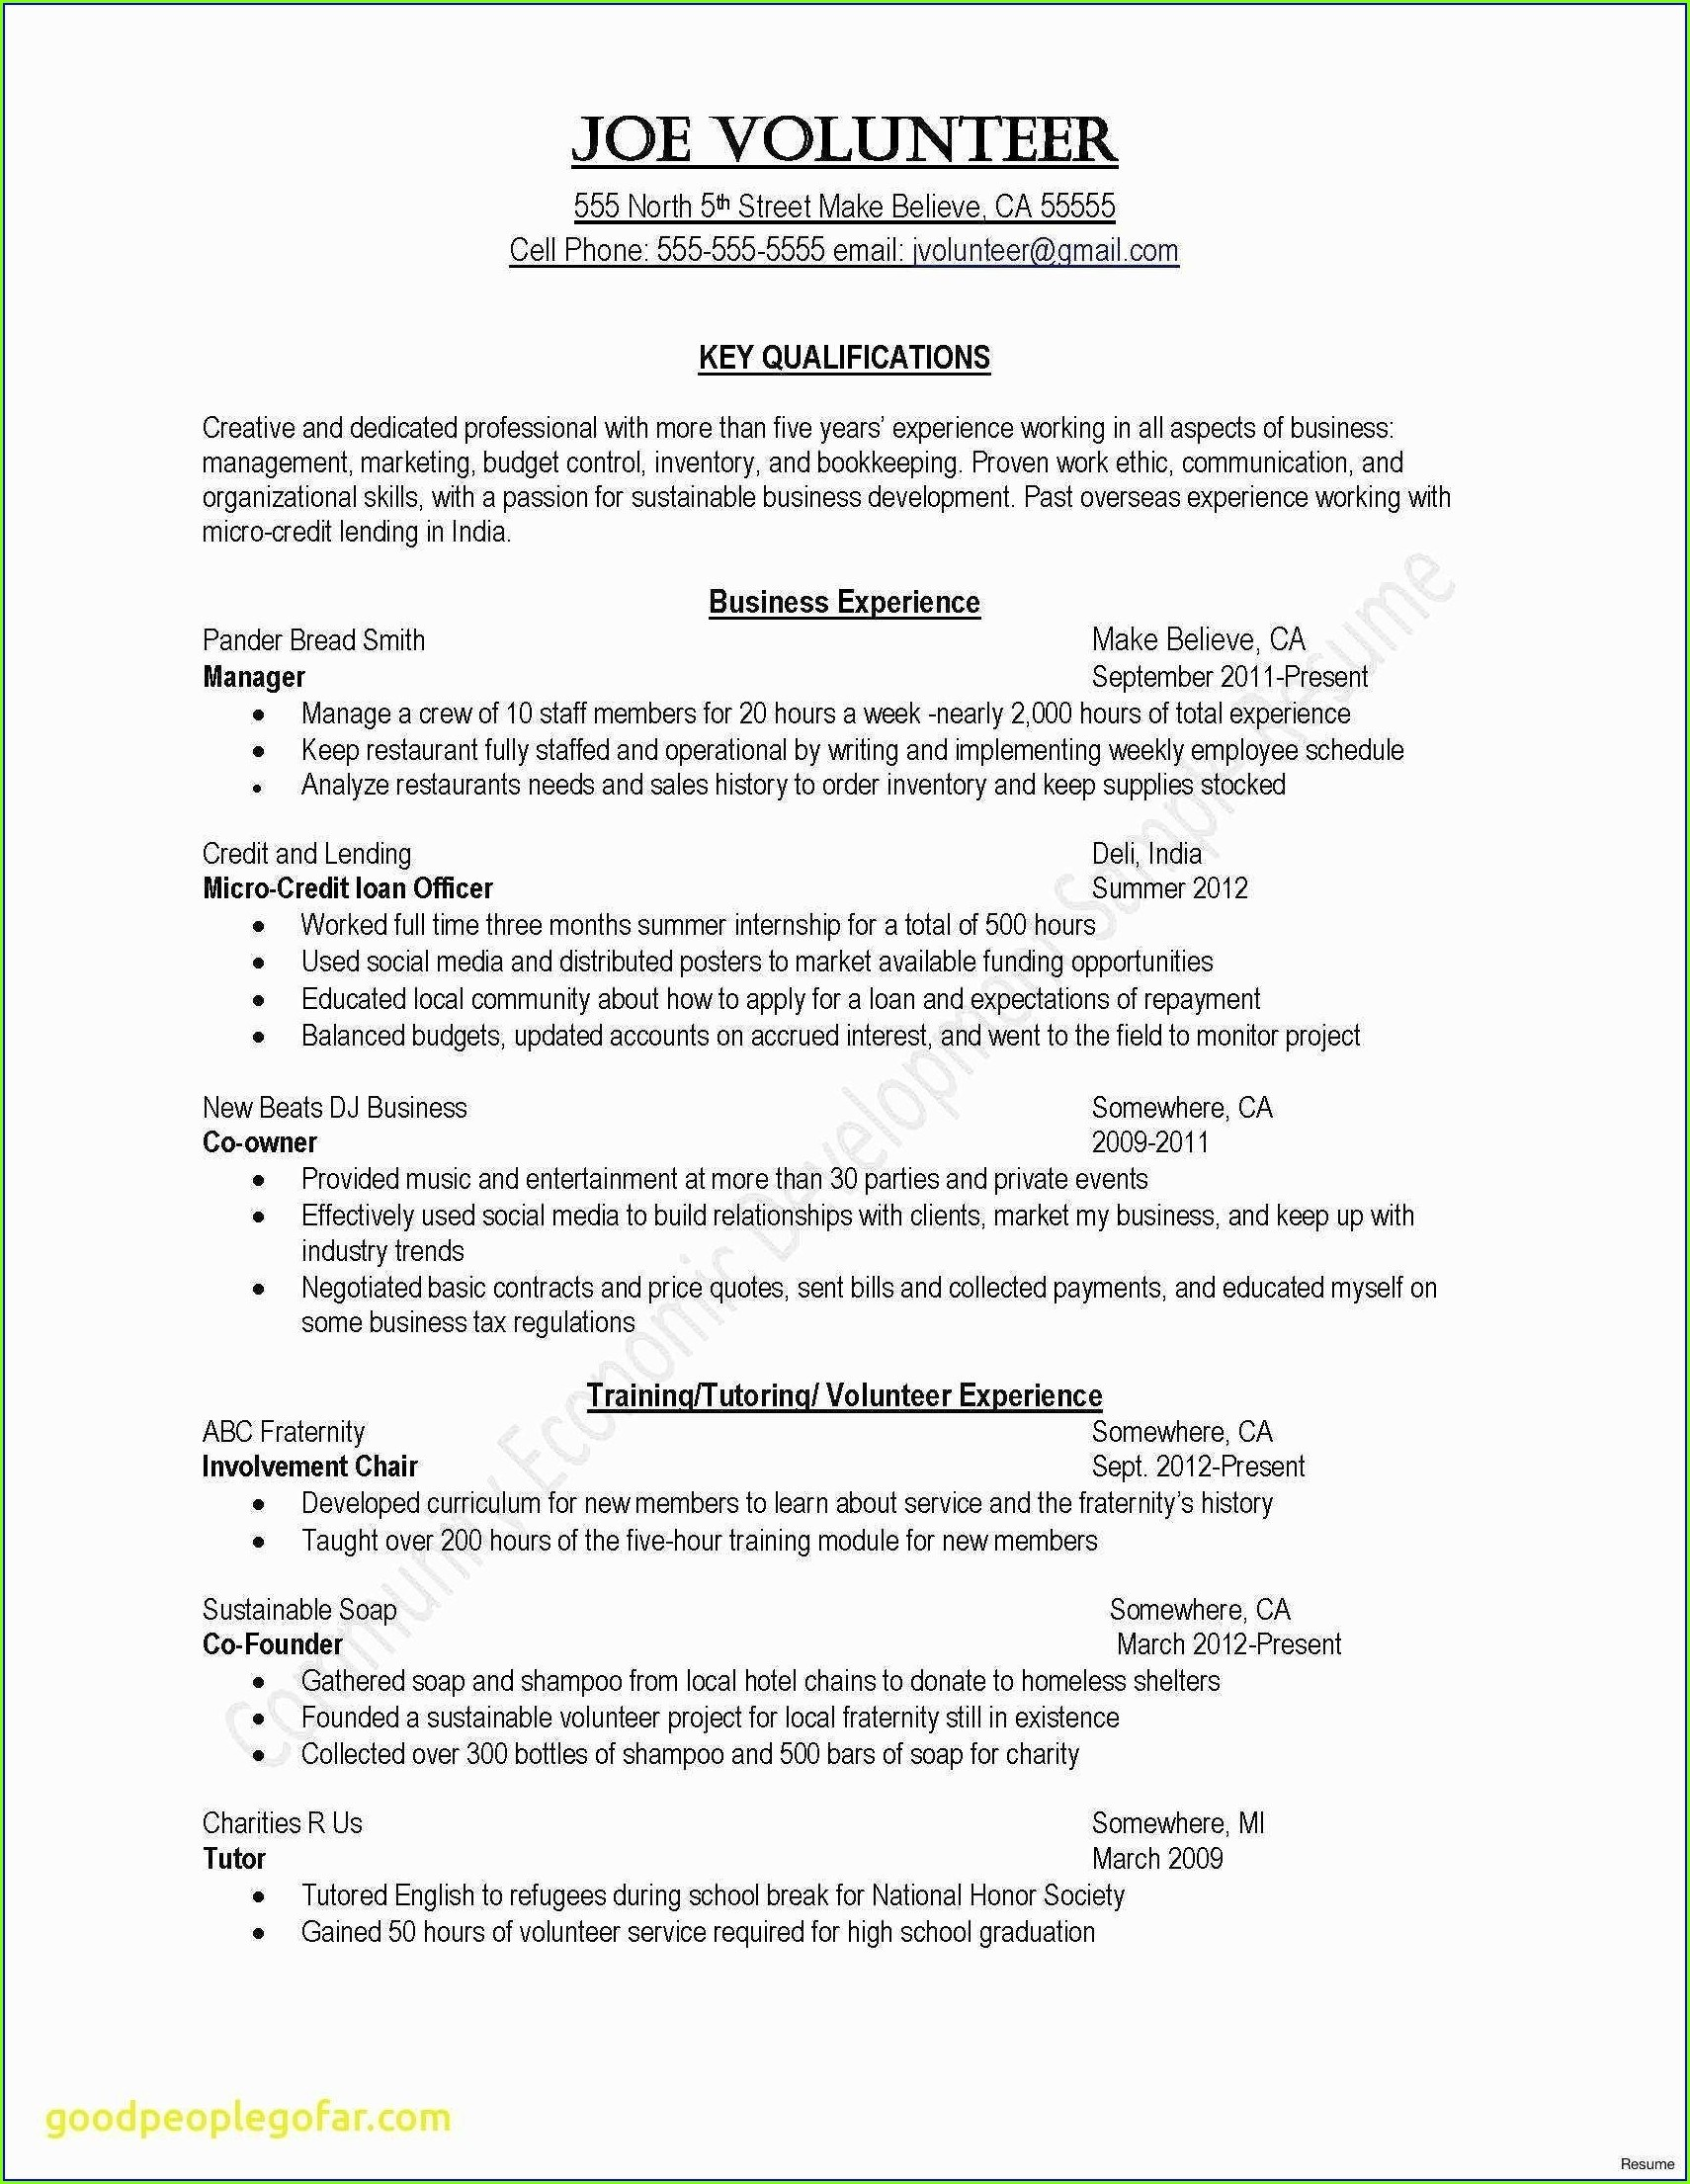 resume writing services in sc top best builders local for school secretary position Resume Resume Writing Services Local